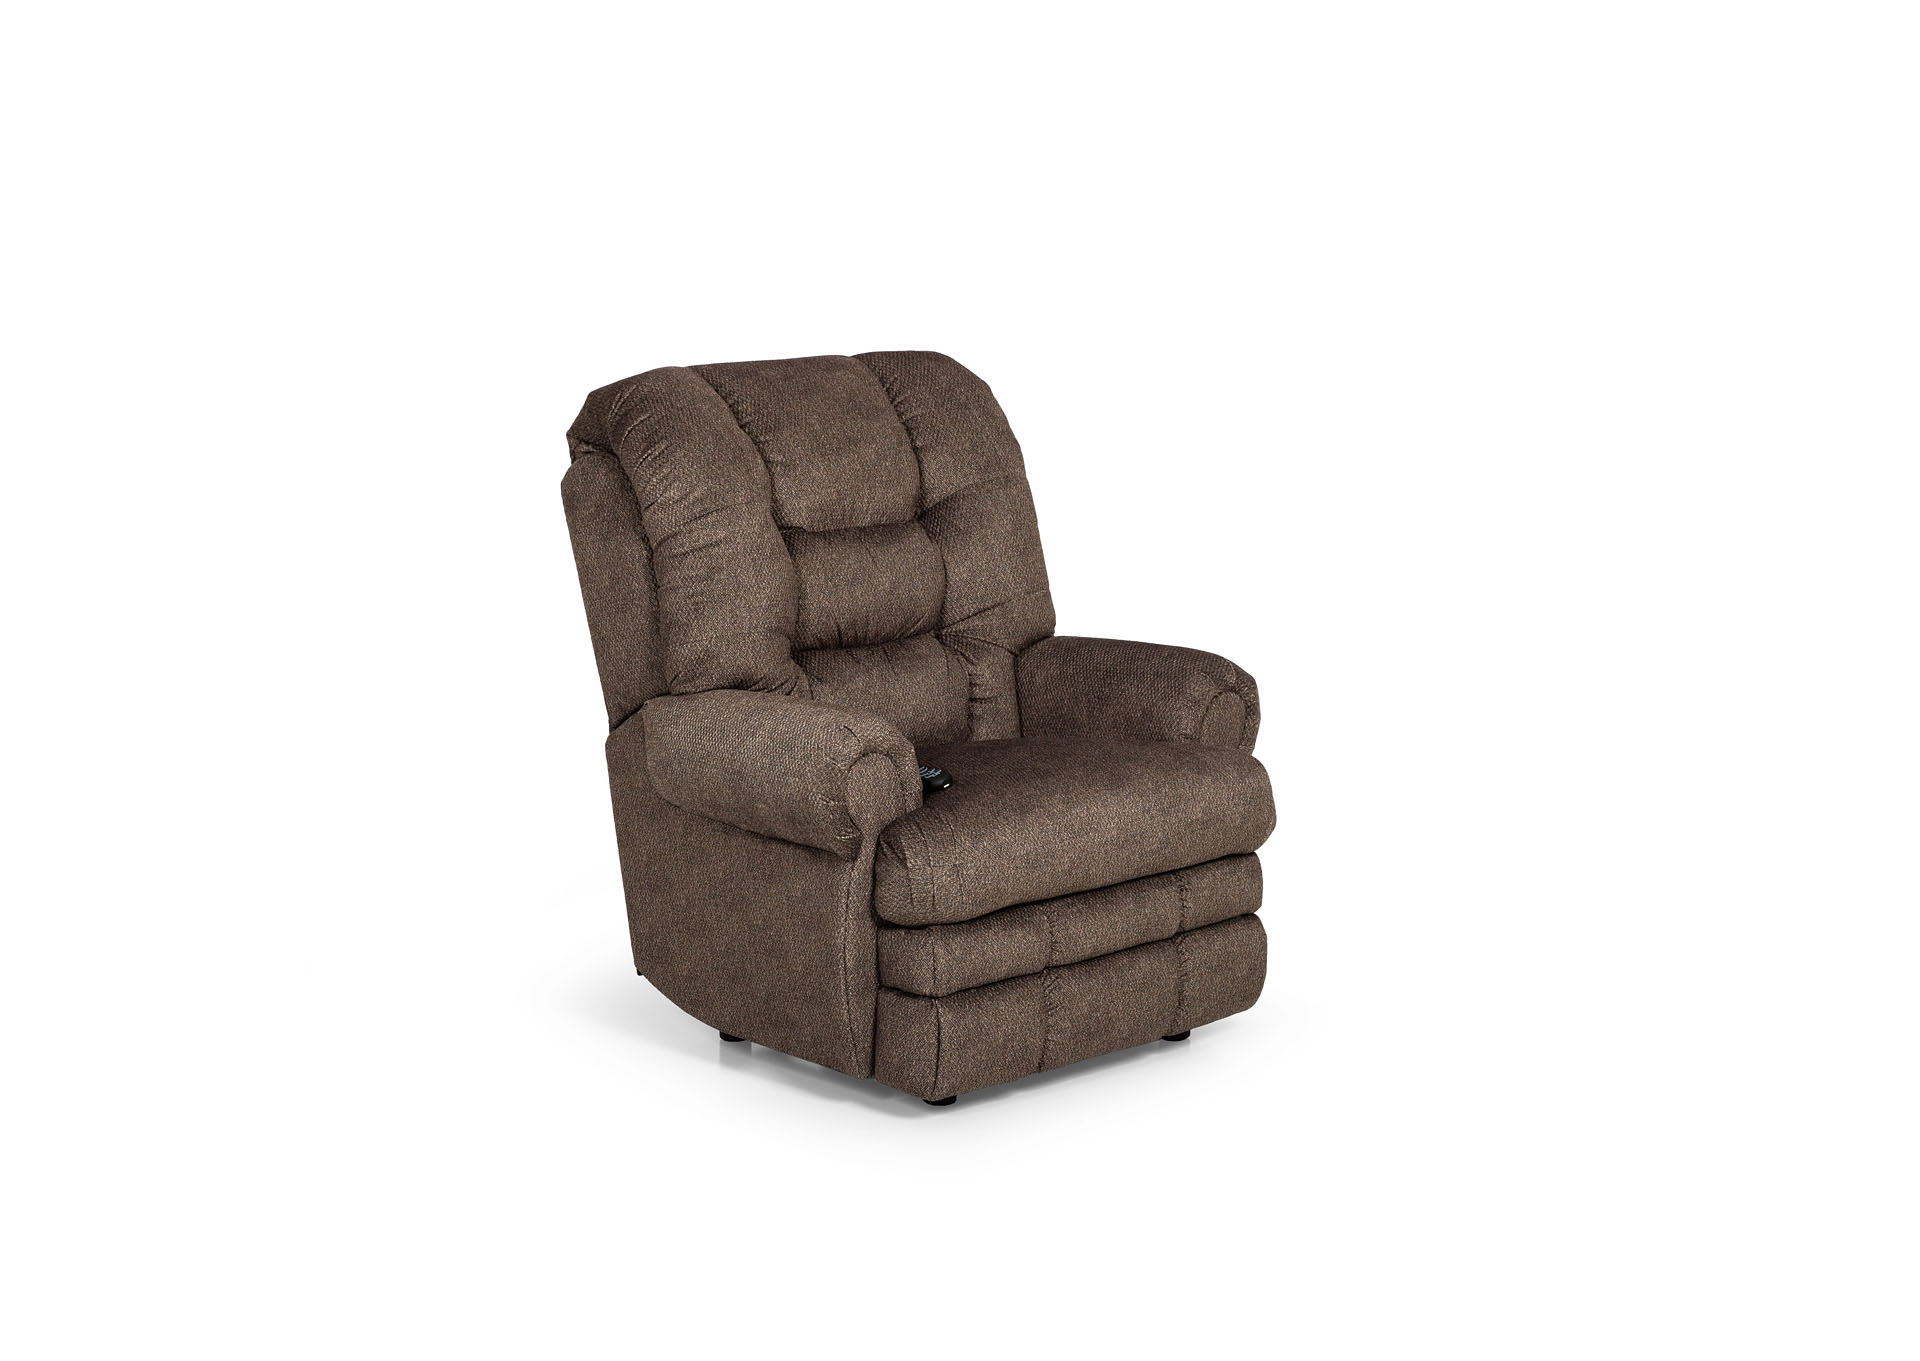 Seamount Walnut Power Headrest/Lumbar Big Man Lift Chair,Stanton